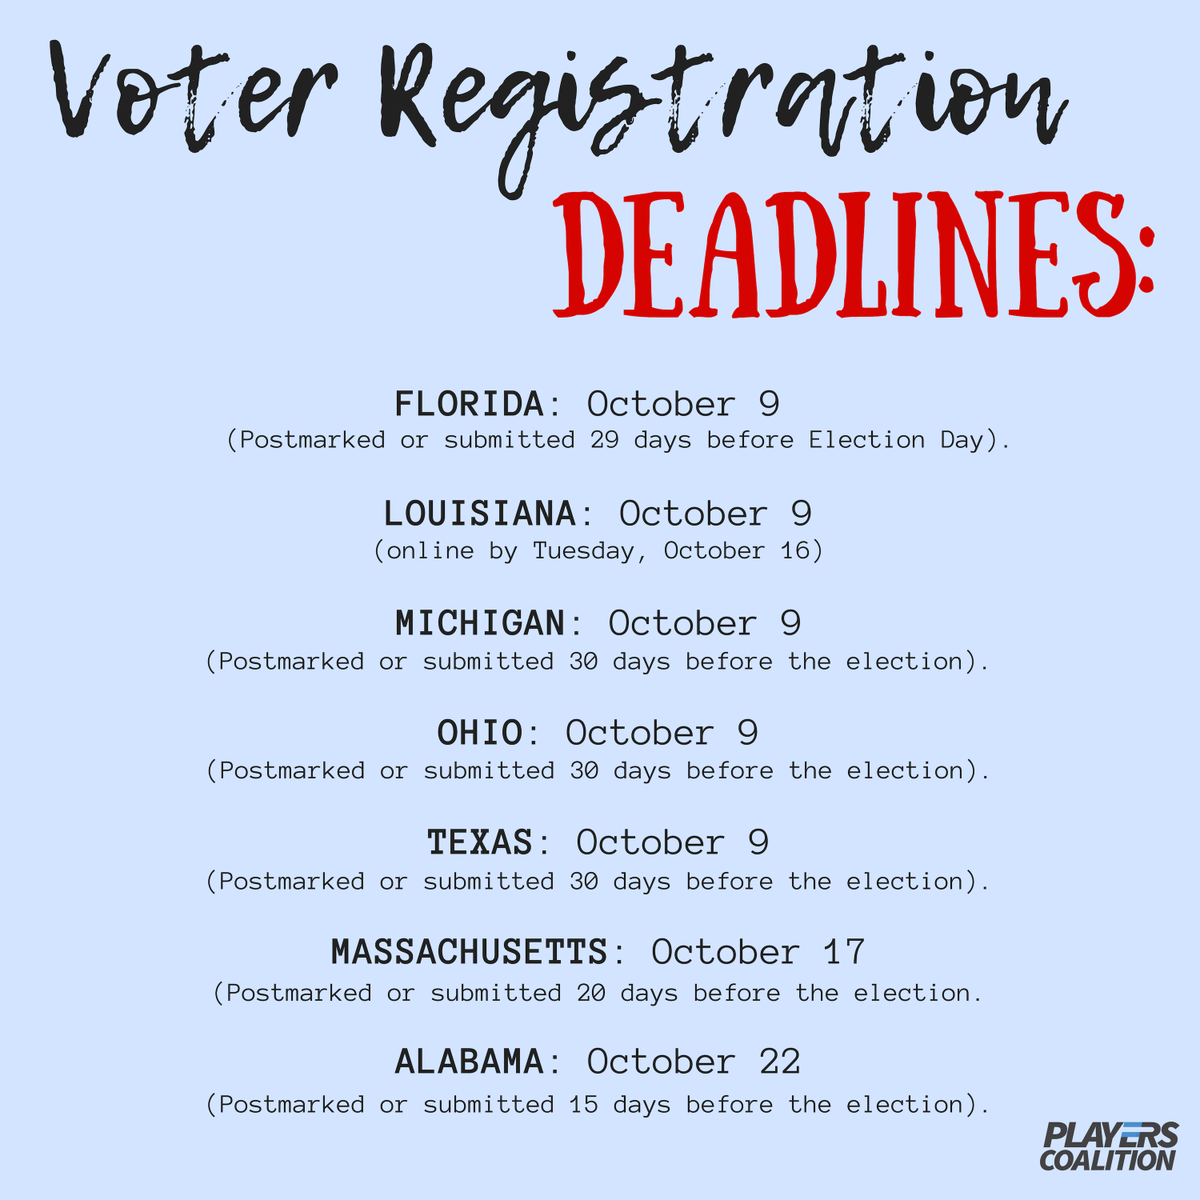 Deadlines are coming up. Are you registered? Are you sure? Head over to AthleteVote.com to check.